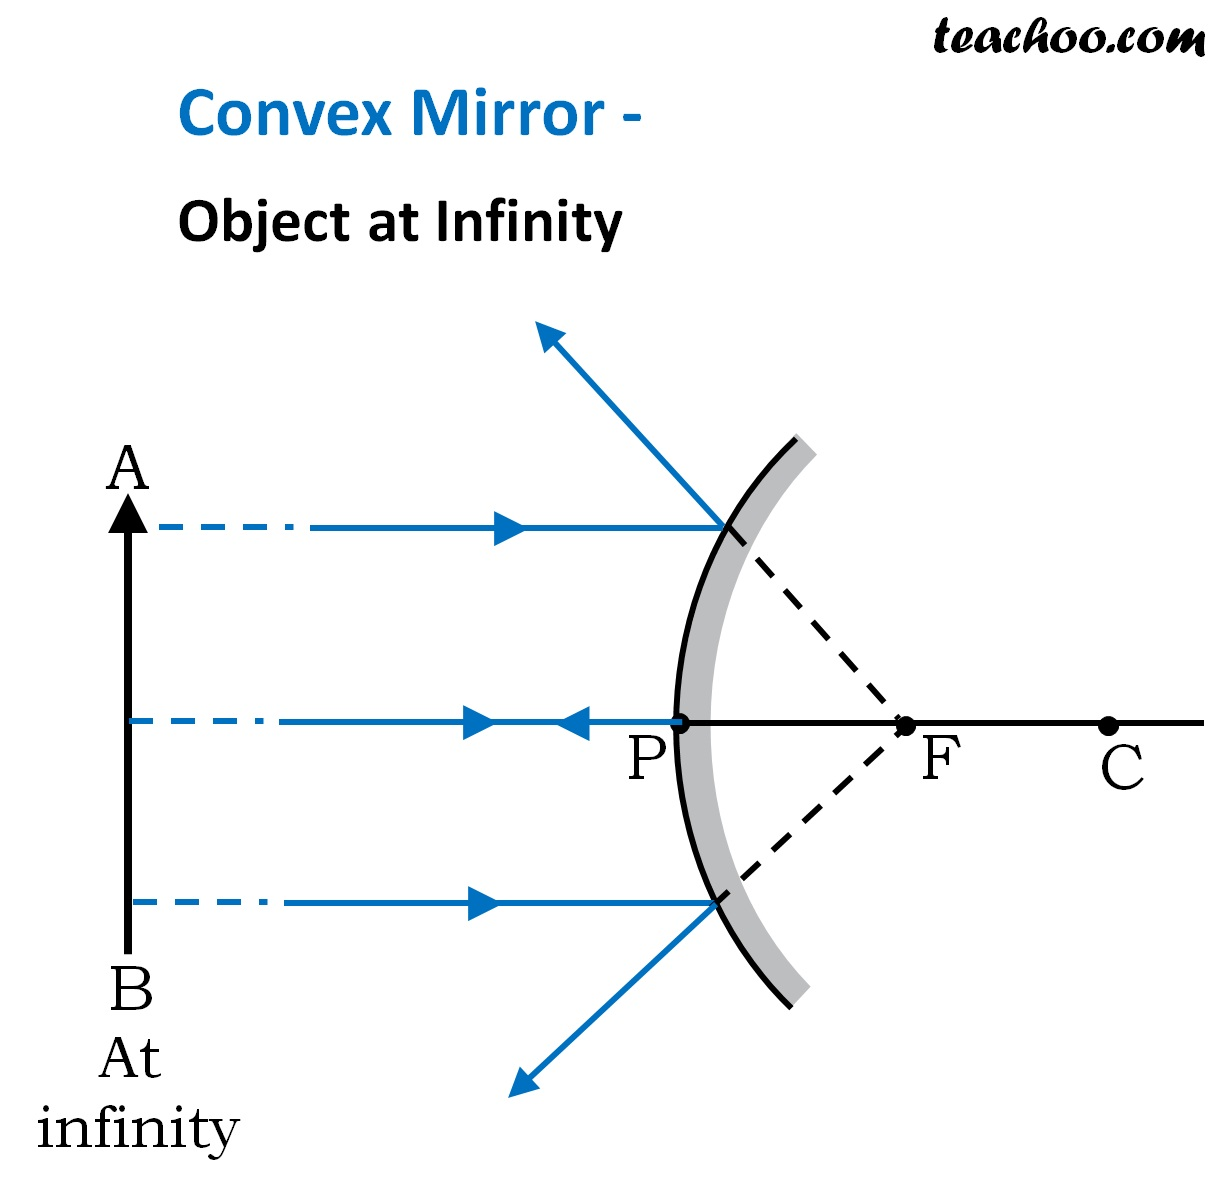 Convex Mirror - Object at Infinity - Ray Diagram - Teachoo.jpg